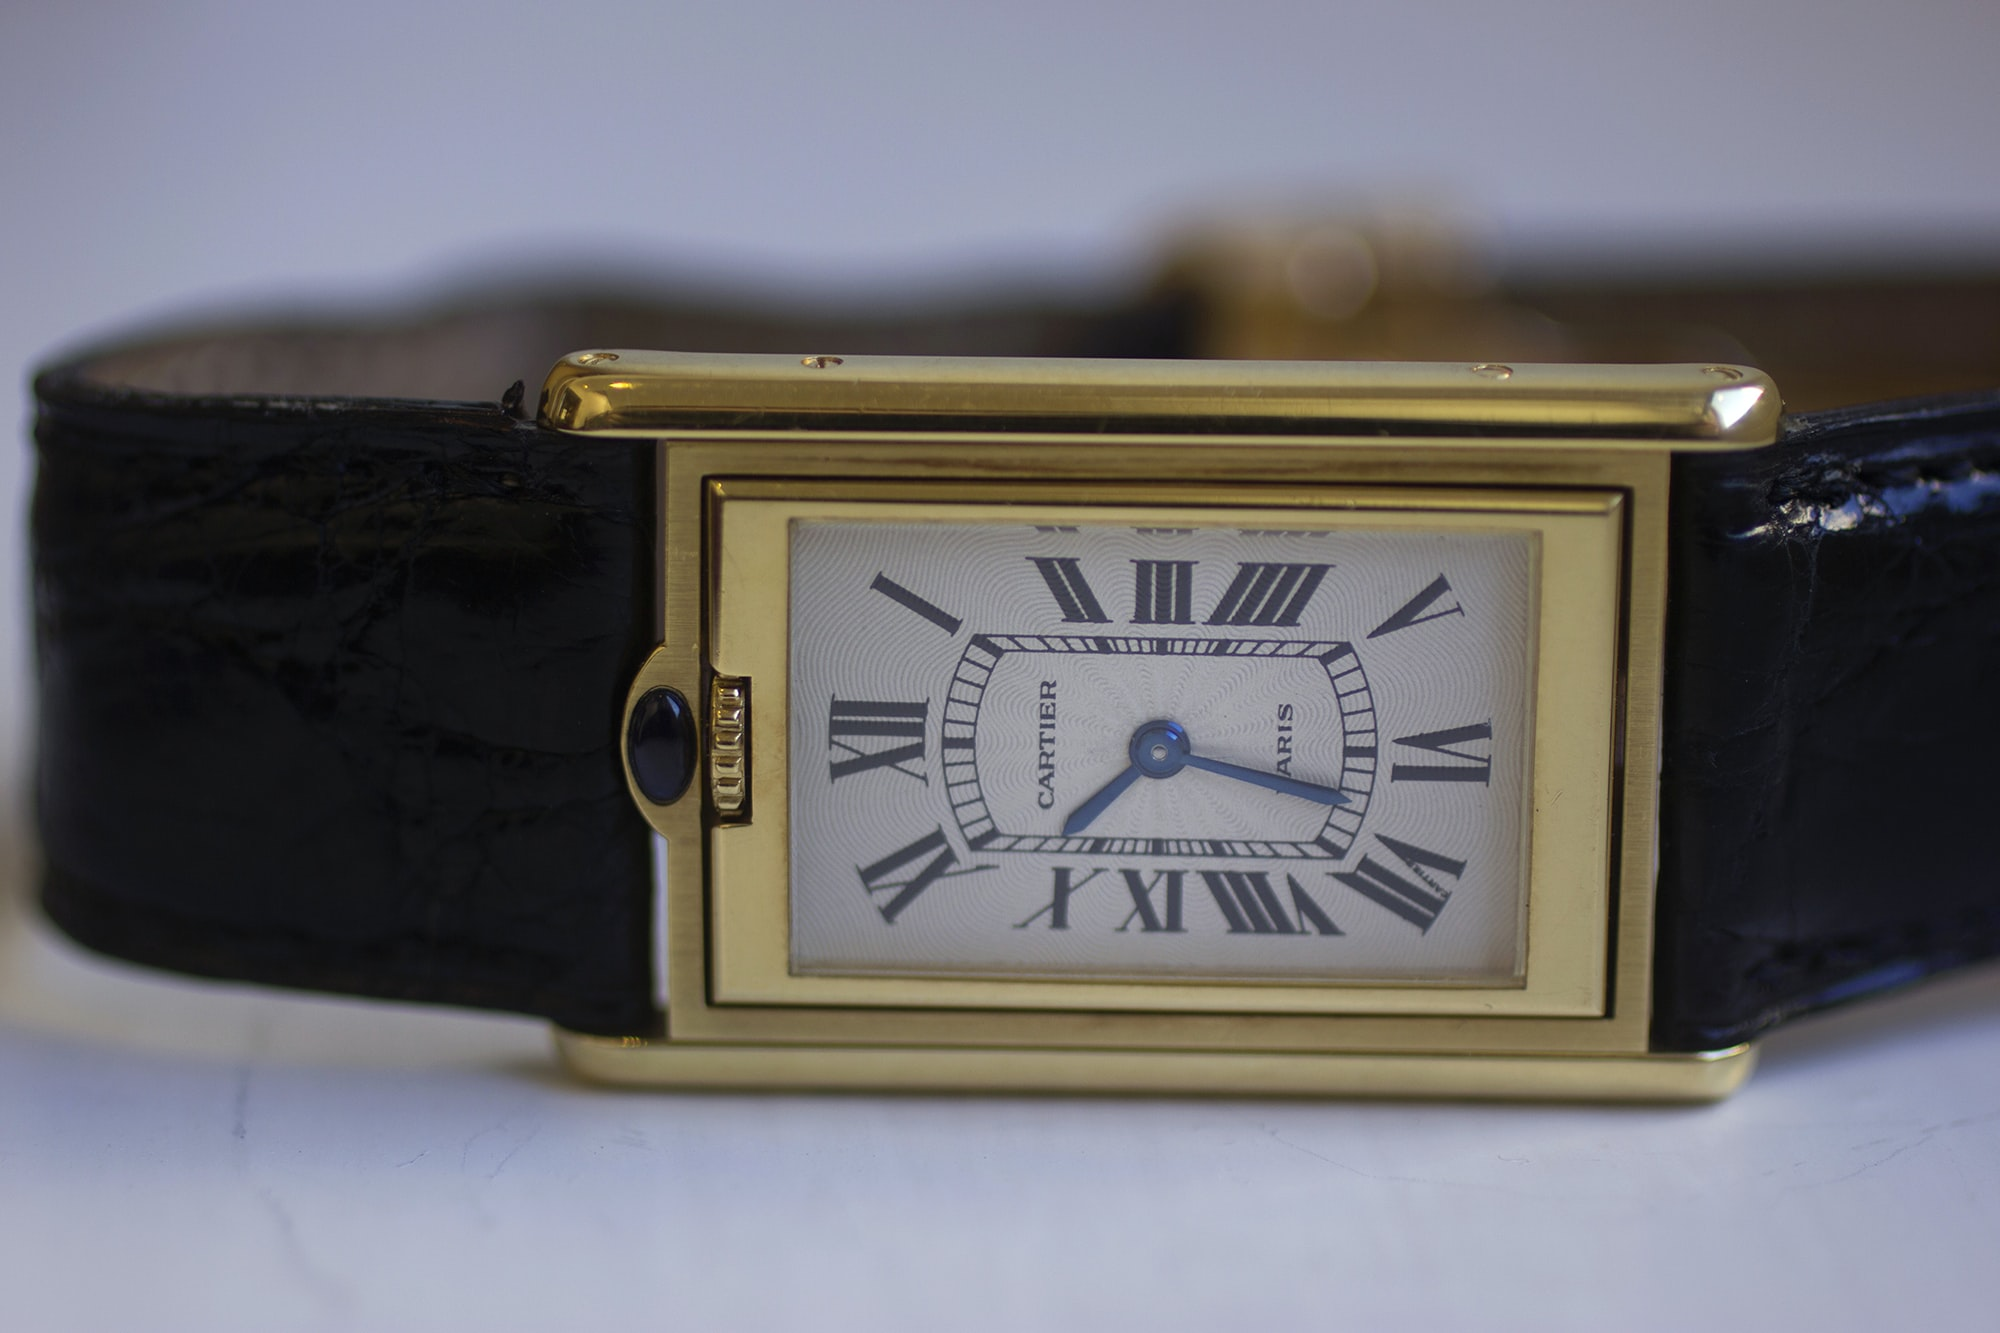 Five Reasons The Cartier Tank Basculante Isn't 'The Other' Reverso Five Reasons The Cartier Tank Basculante Isn't 'The Other' Reverso IMG 7511